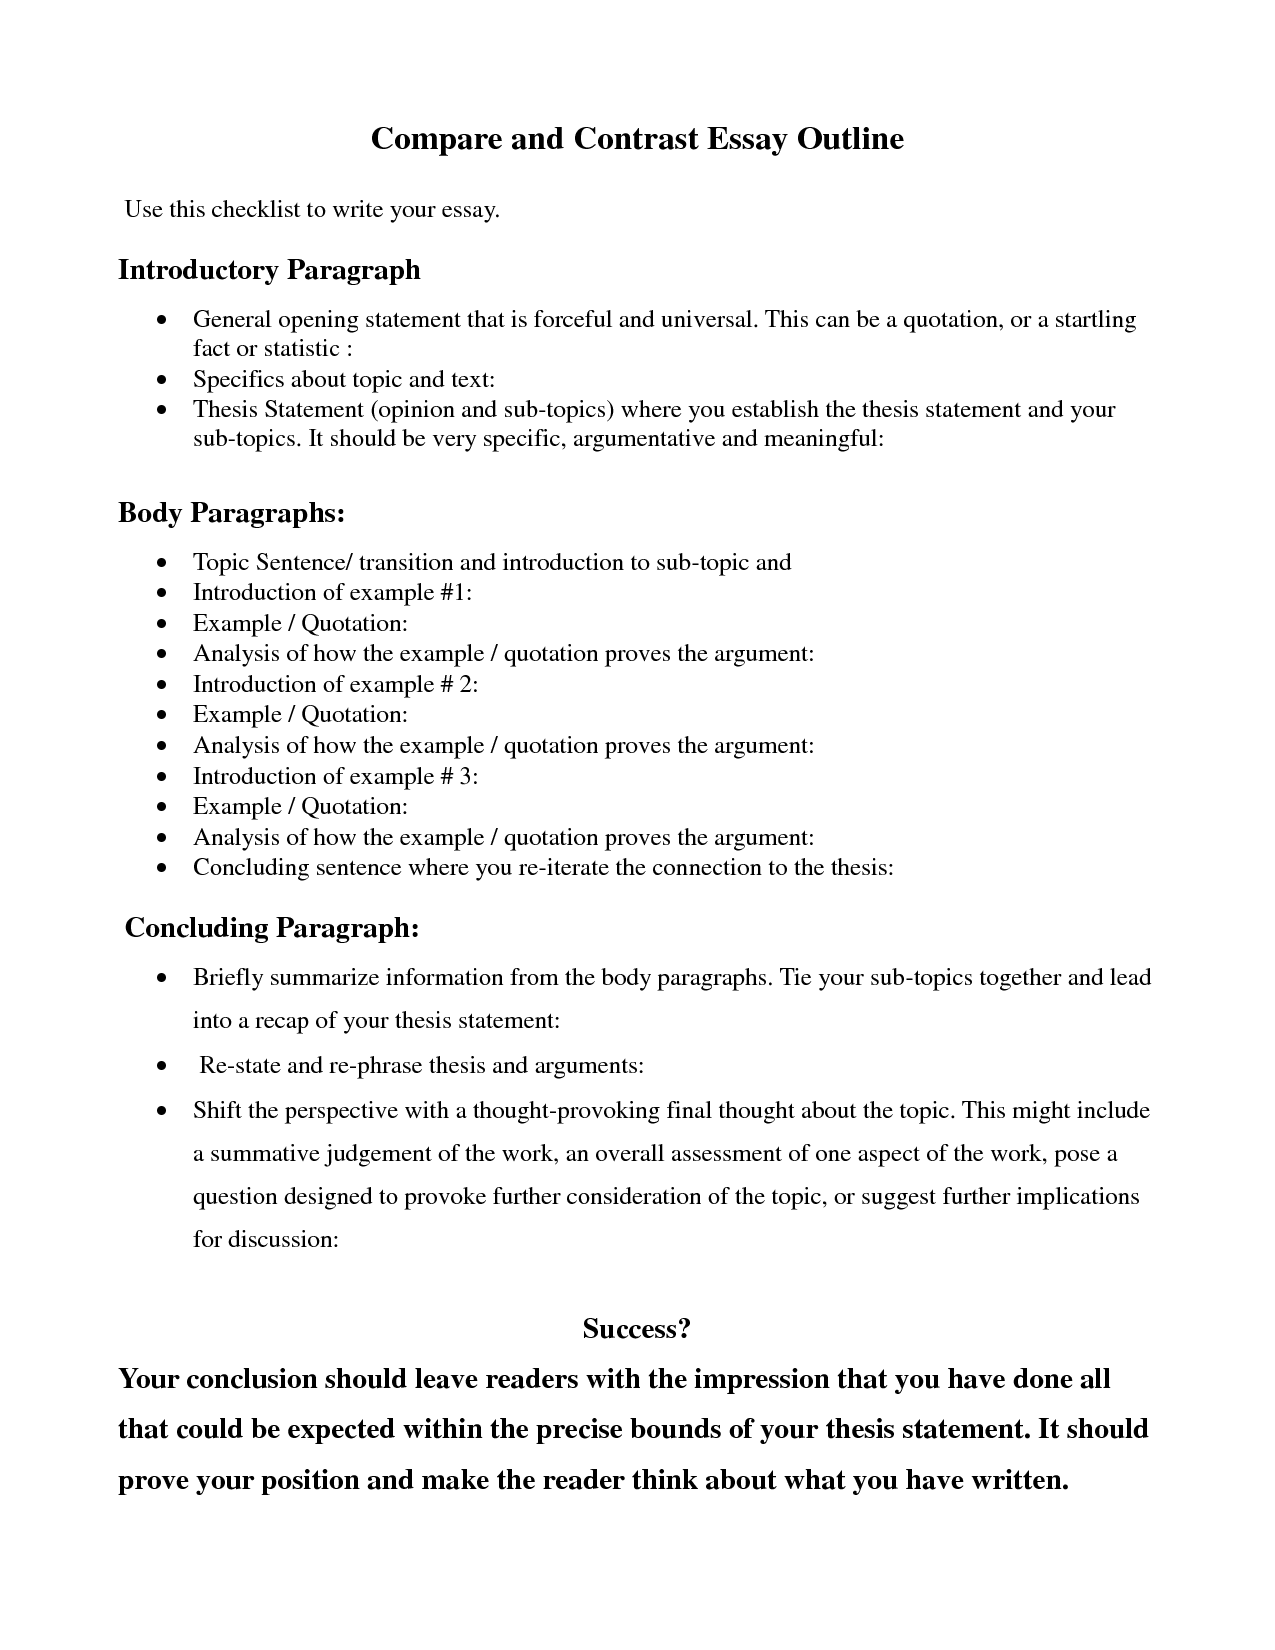 013 Essay Example Contrast Astounding Topics Comparison Middle School Compare For Elementary Students Prompts Full